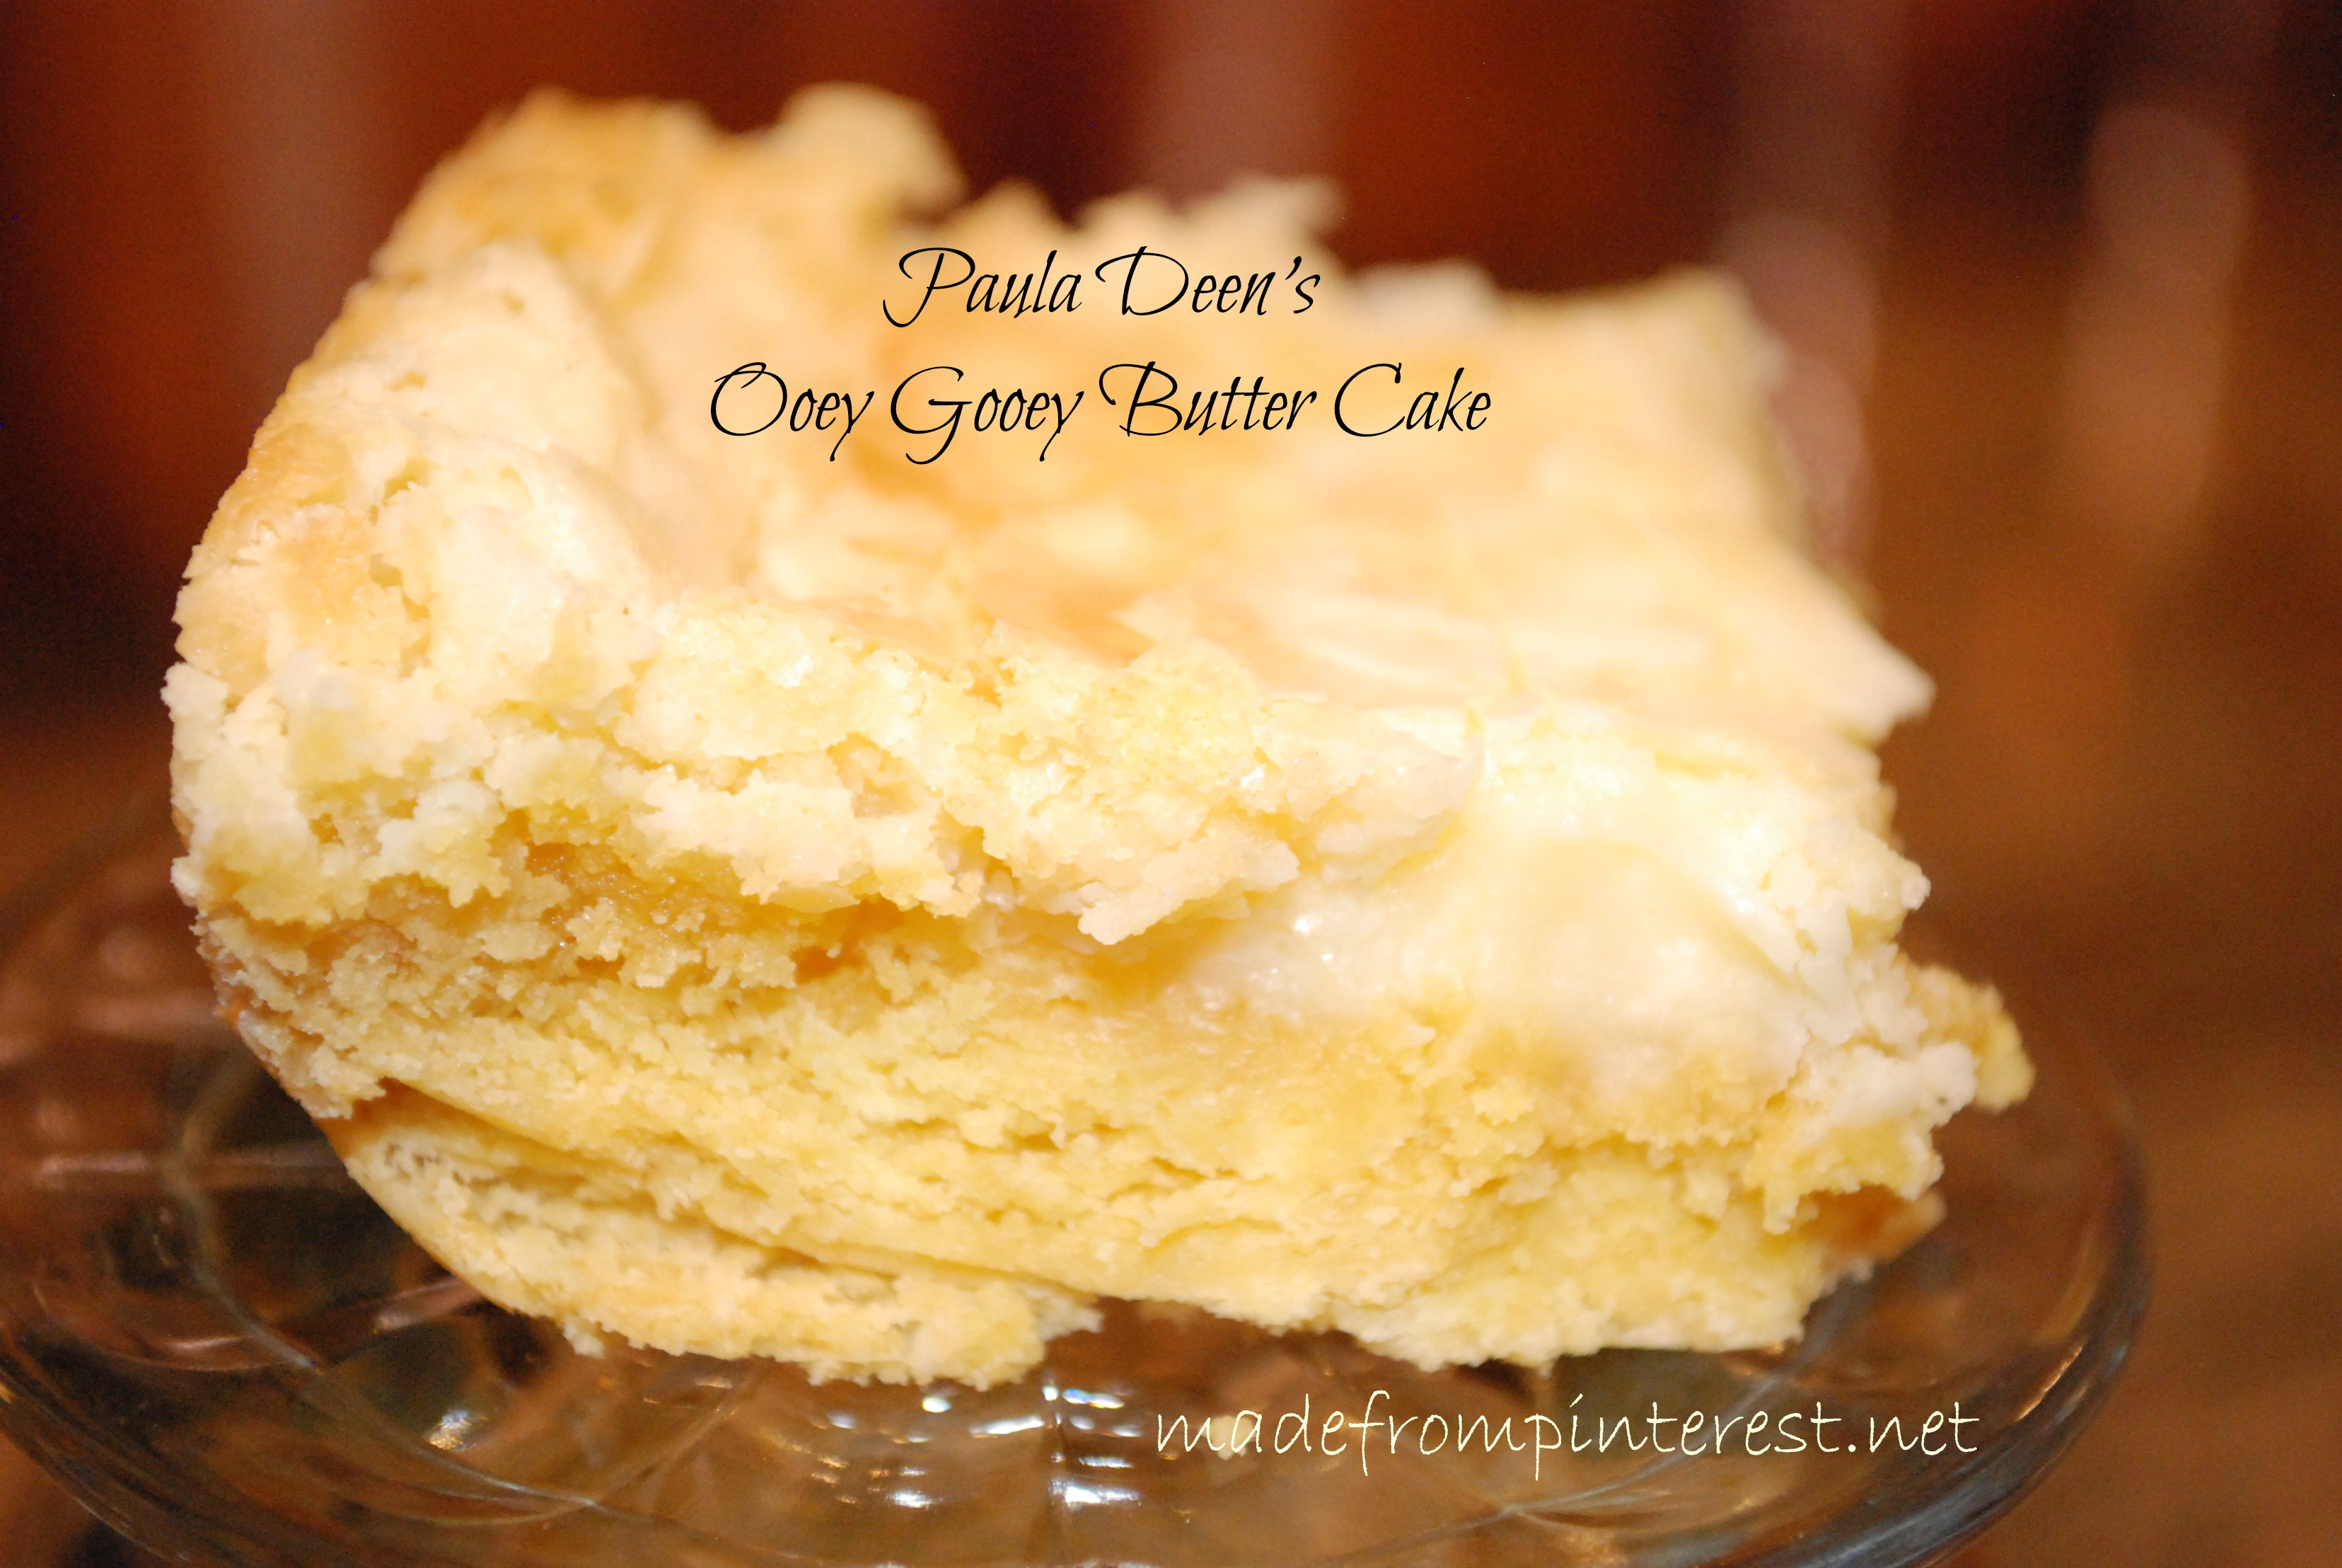 Goey Butter Cakes